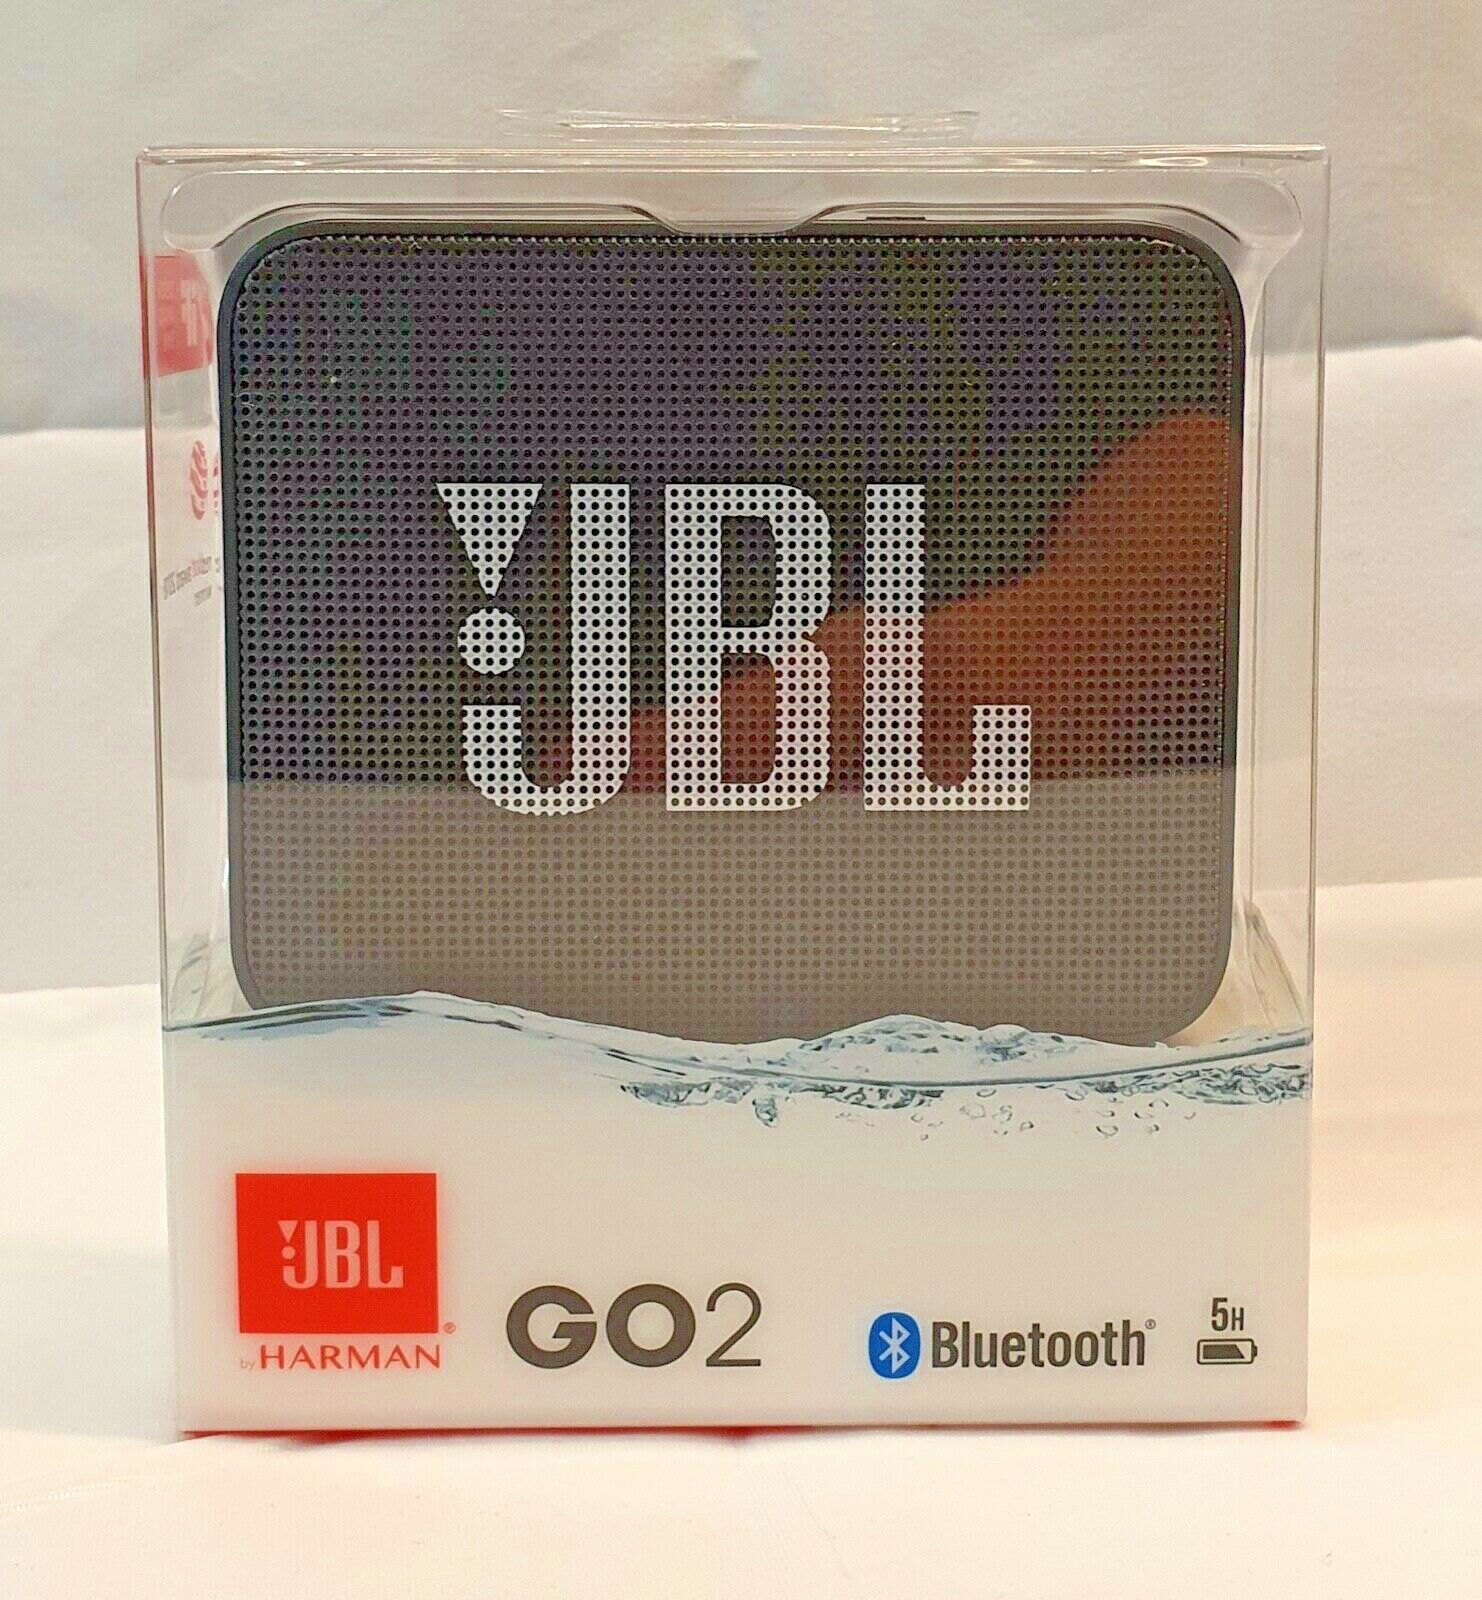 JBL GO 2 Portable Bluetooth Speaker Waterproof and Rechargeable with Handsfree